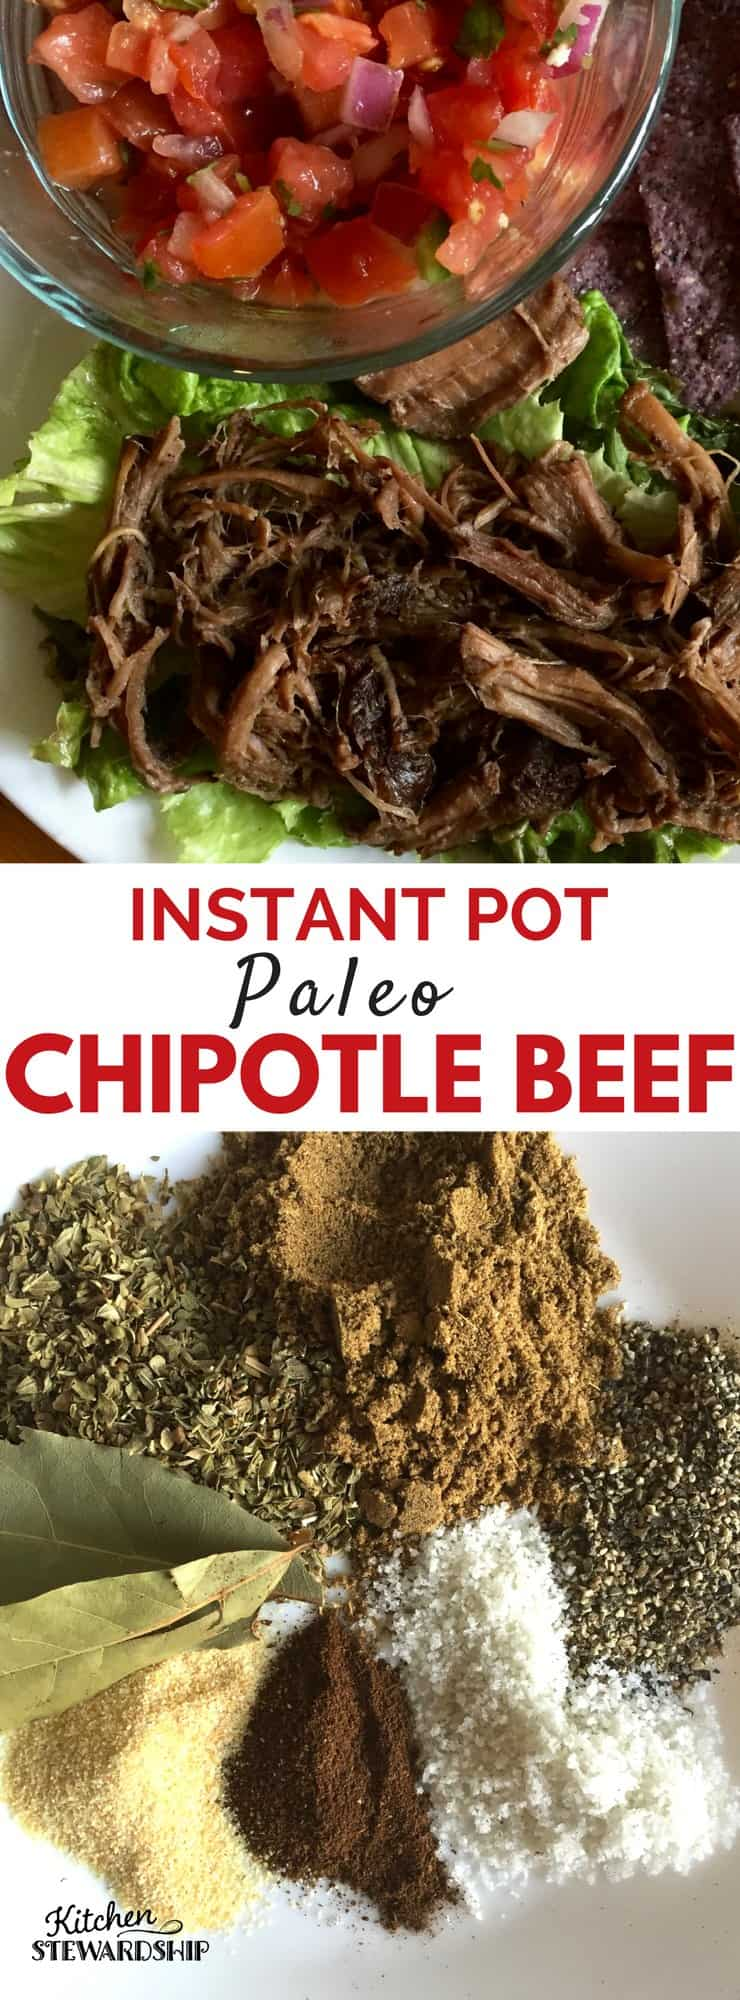 Instant pot or slow cooker chipotle beef recipe - easy to make and it's gluten free and paleo! Using an affordable cut of beef and making it delicious!